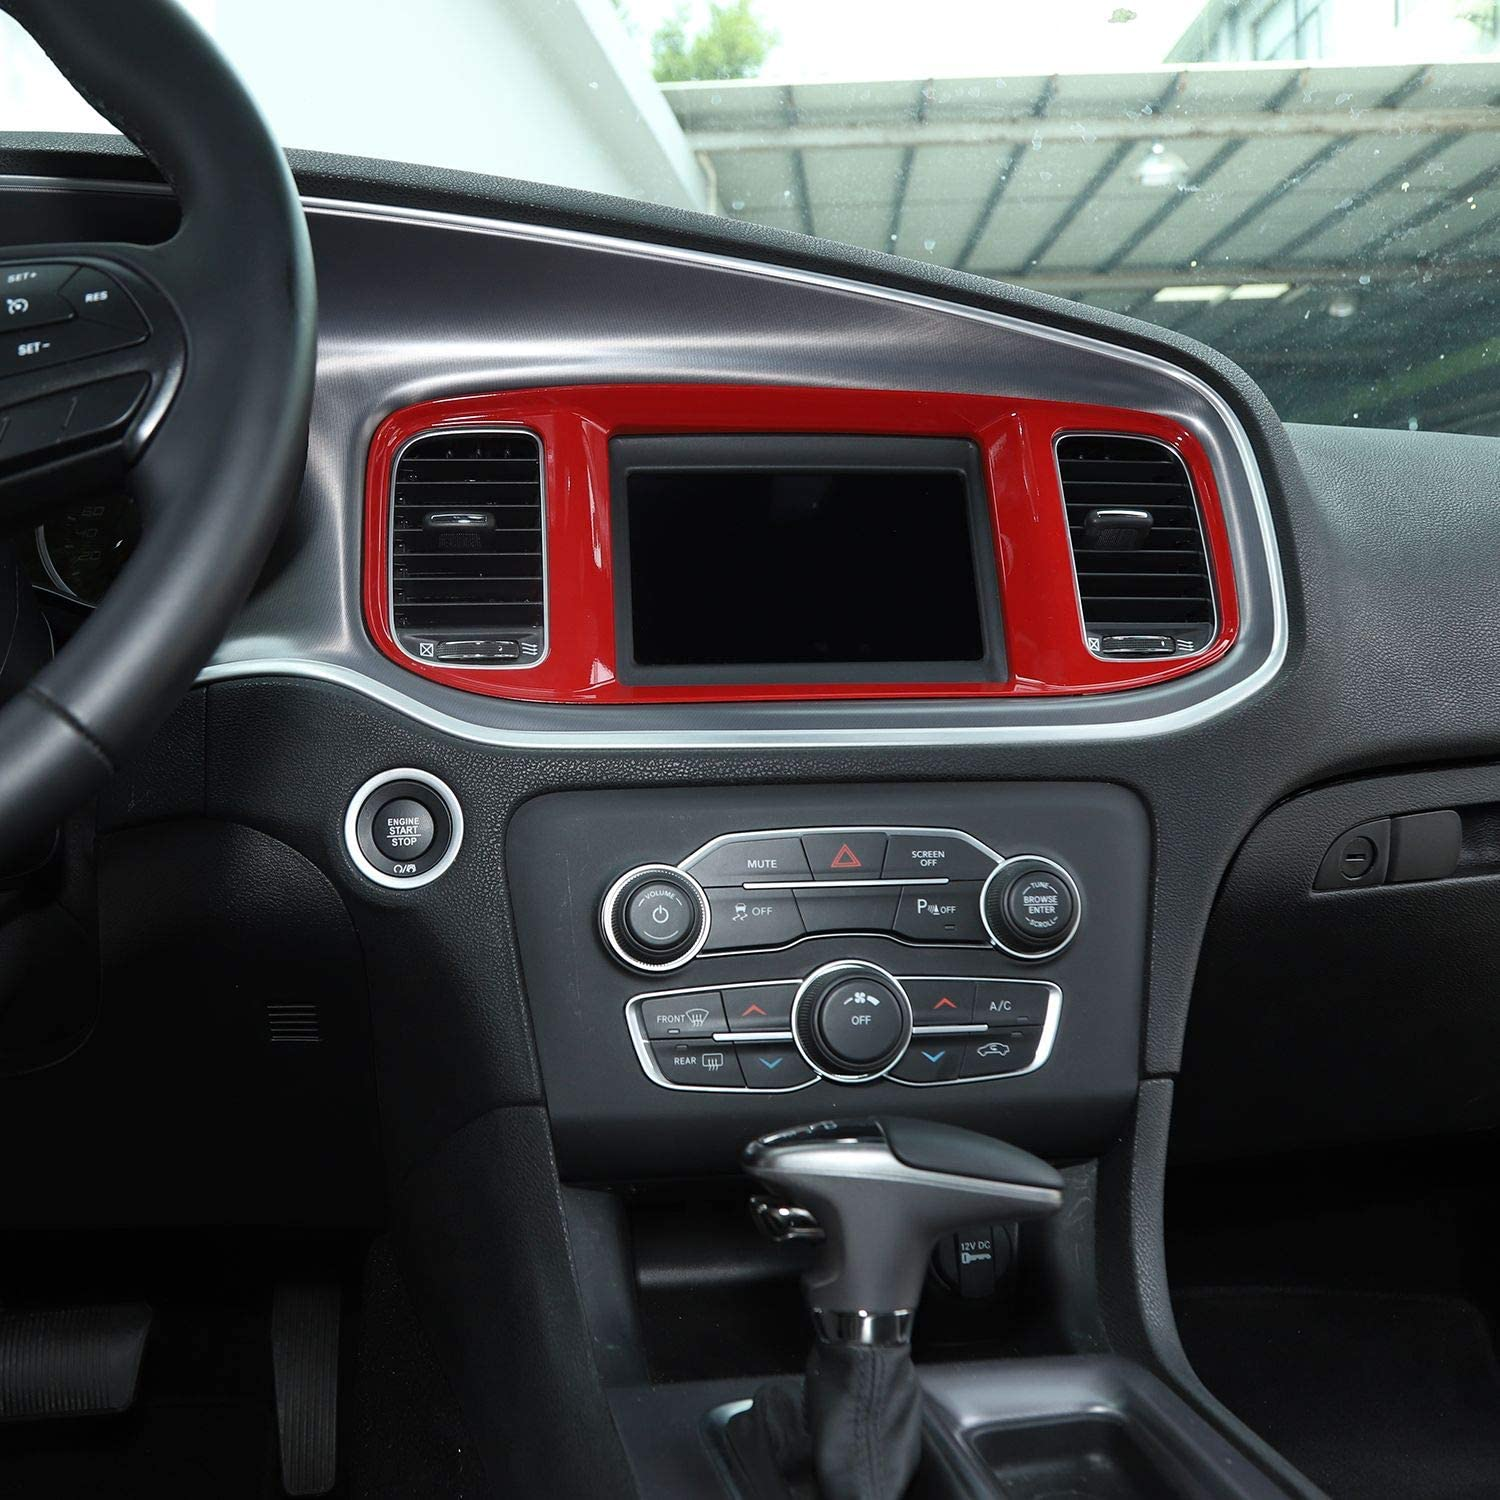 ABS Red//Black Fiber 1pc Voodonala for Charger Center Consoles Navigation GPS Decoration Trim for 2015-2019 Dodge Charger